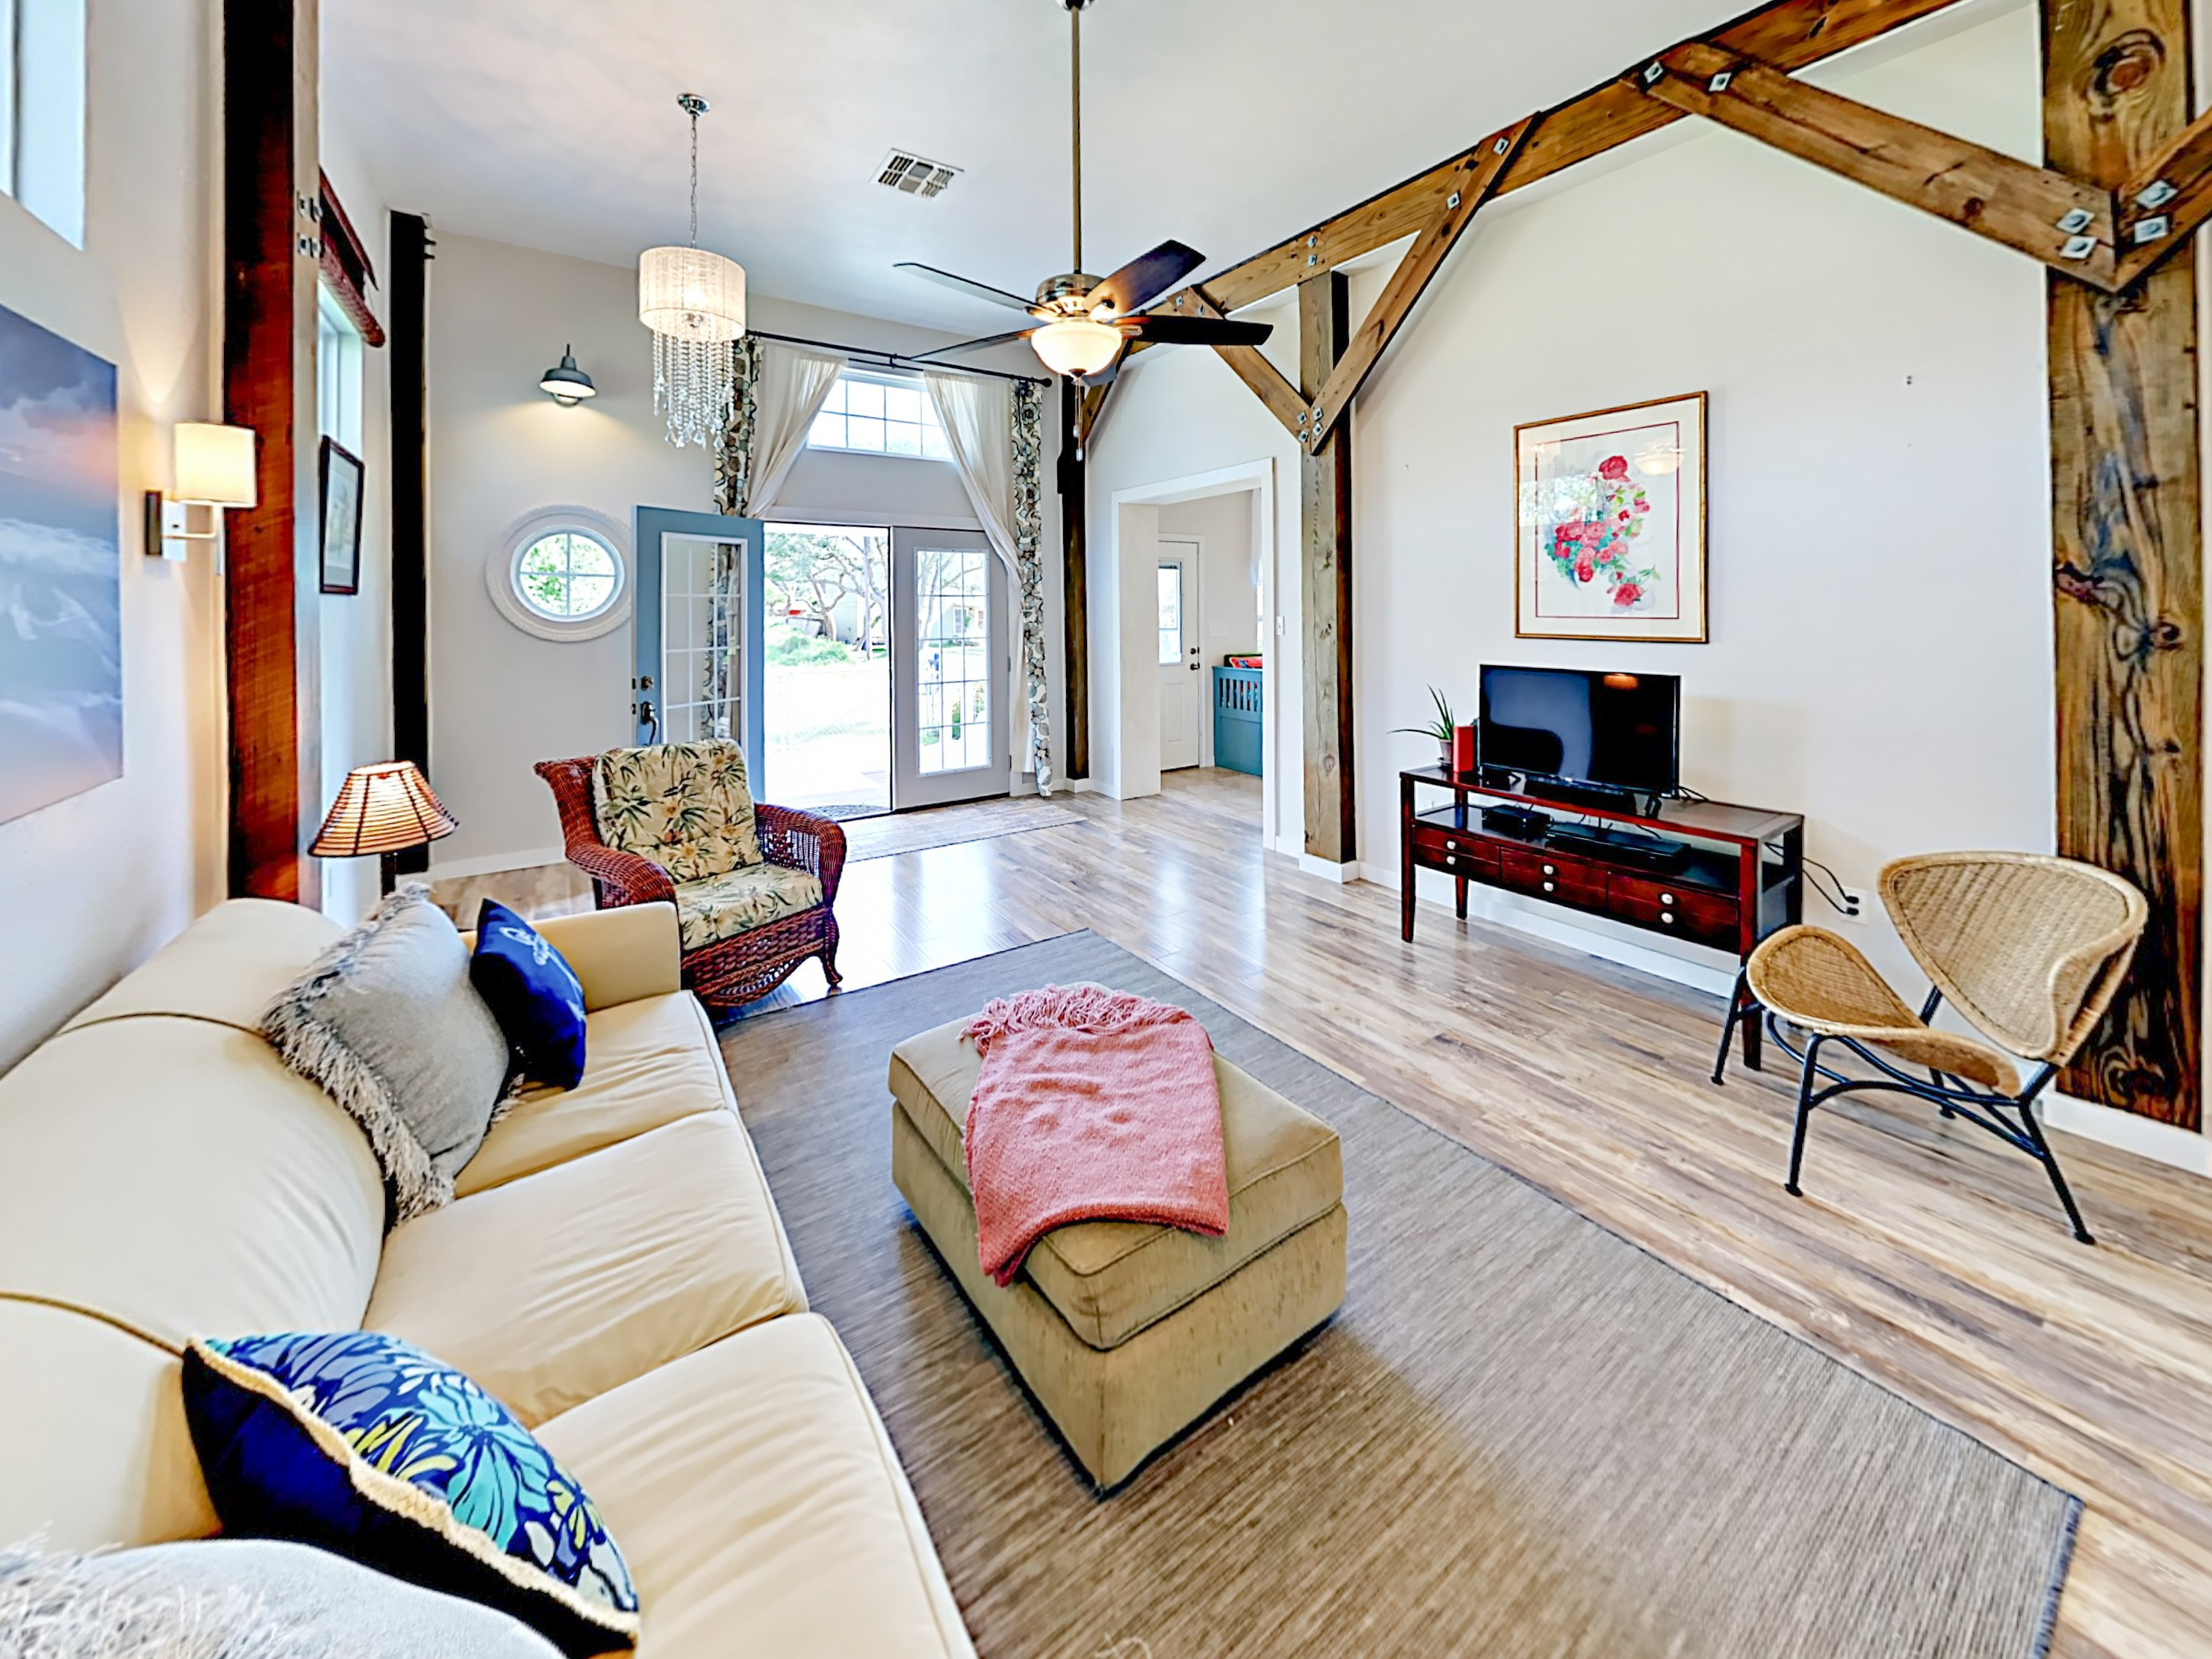 Rockport TX Vacation Rental This stunning home